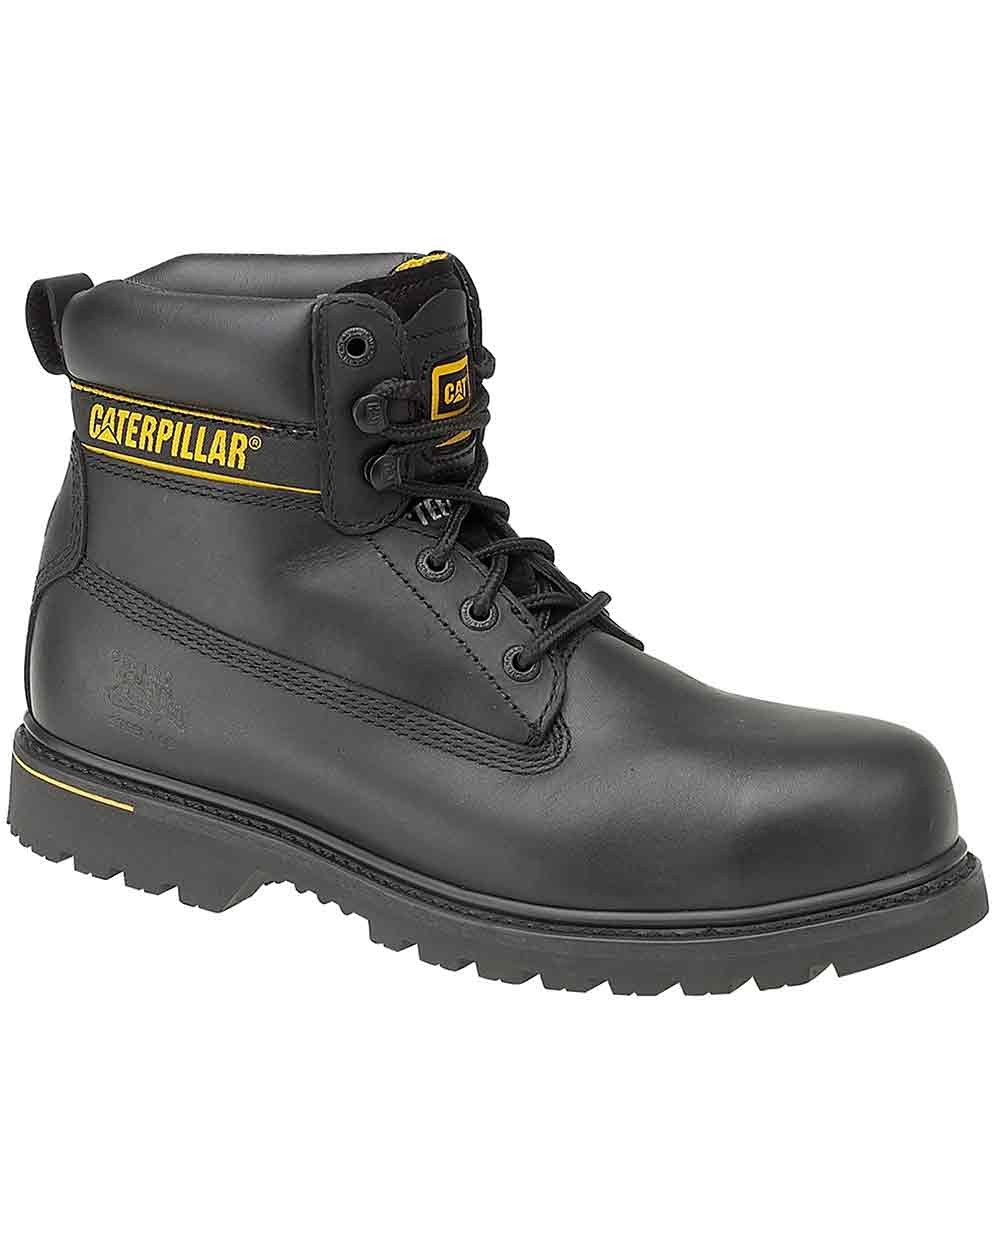 Cat Holton Sb Black Leather Safety Boot Standard Safety Boots